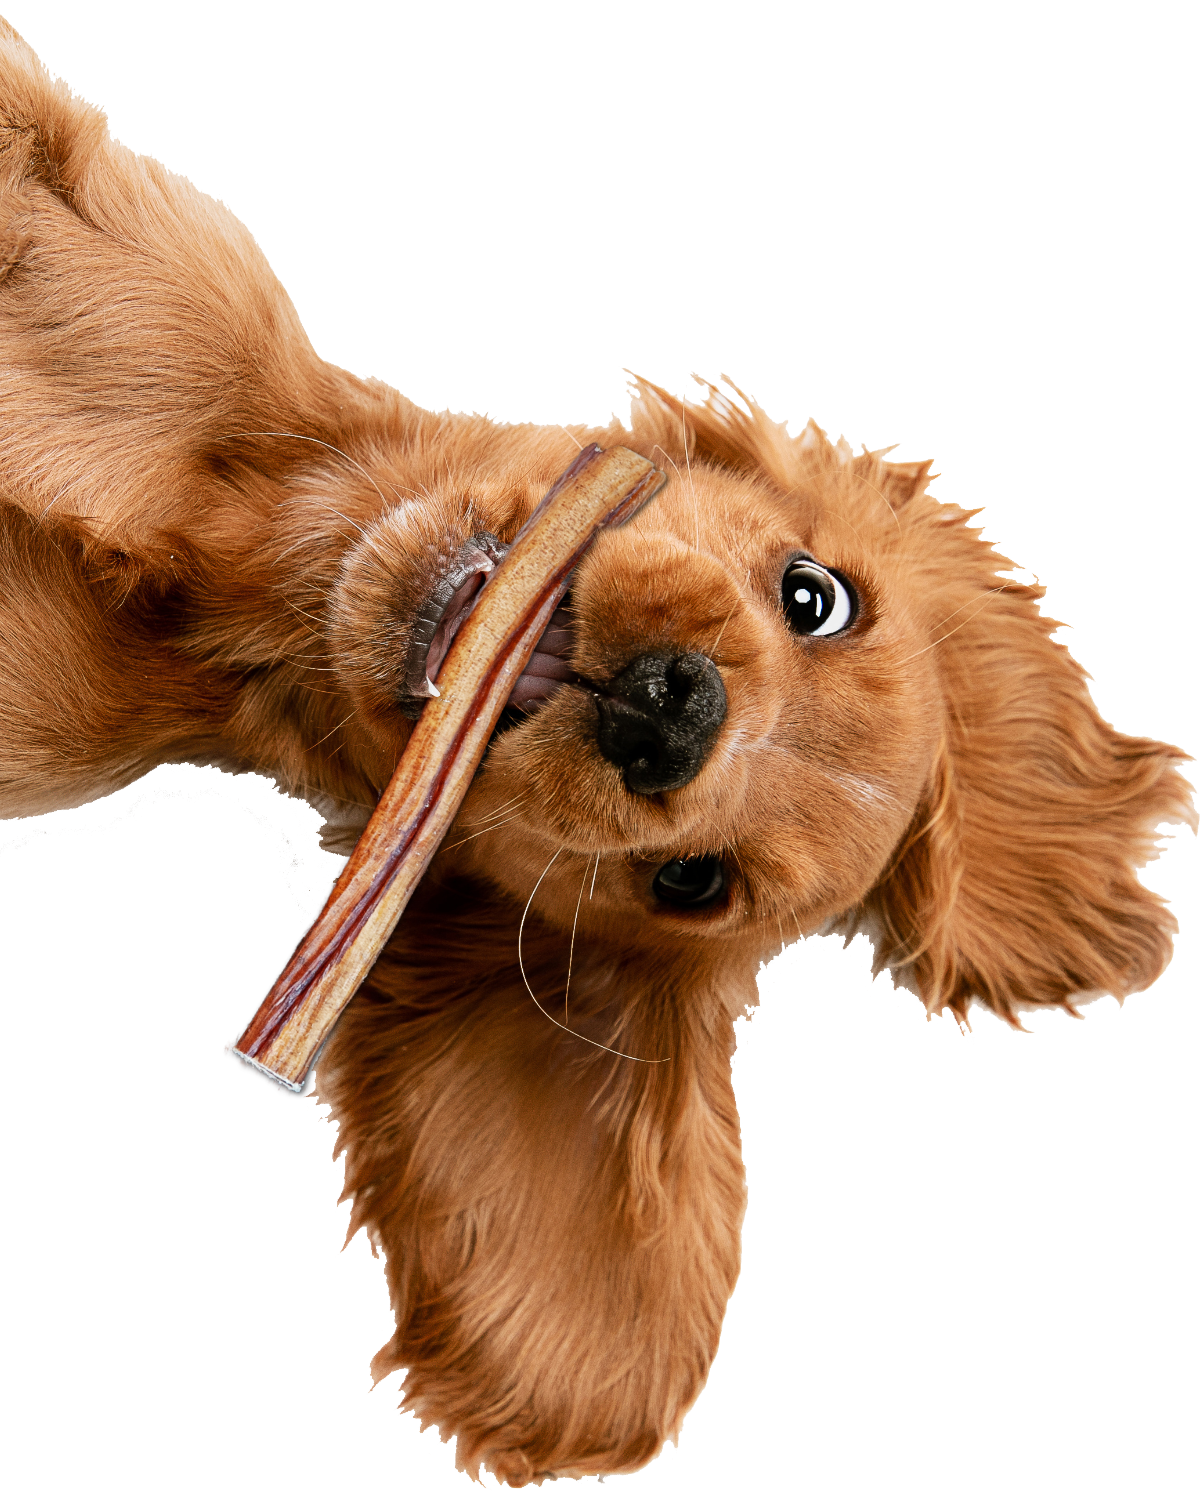 Puppy with bully stick in mouth